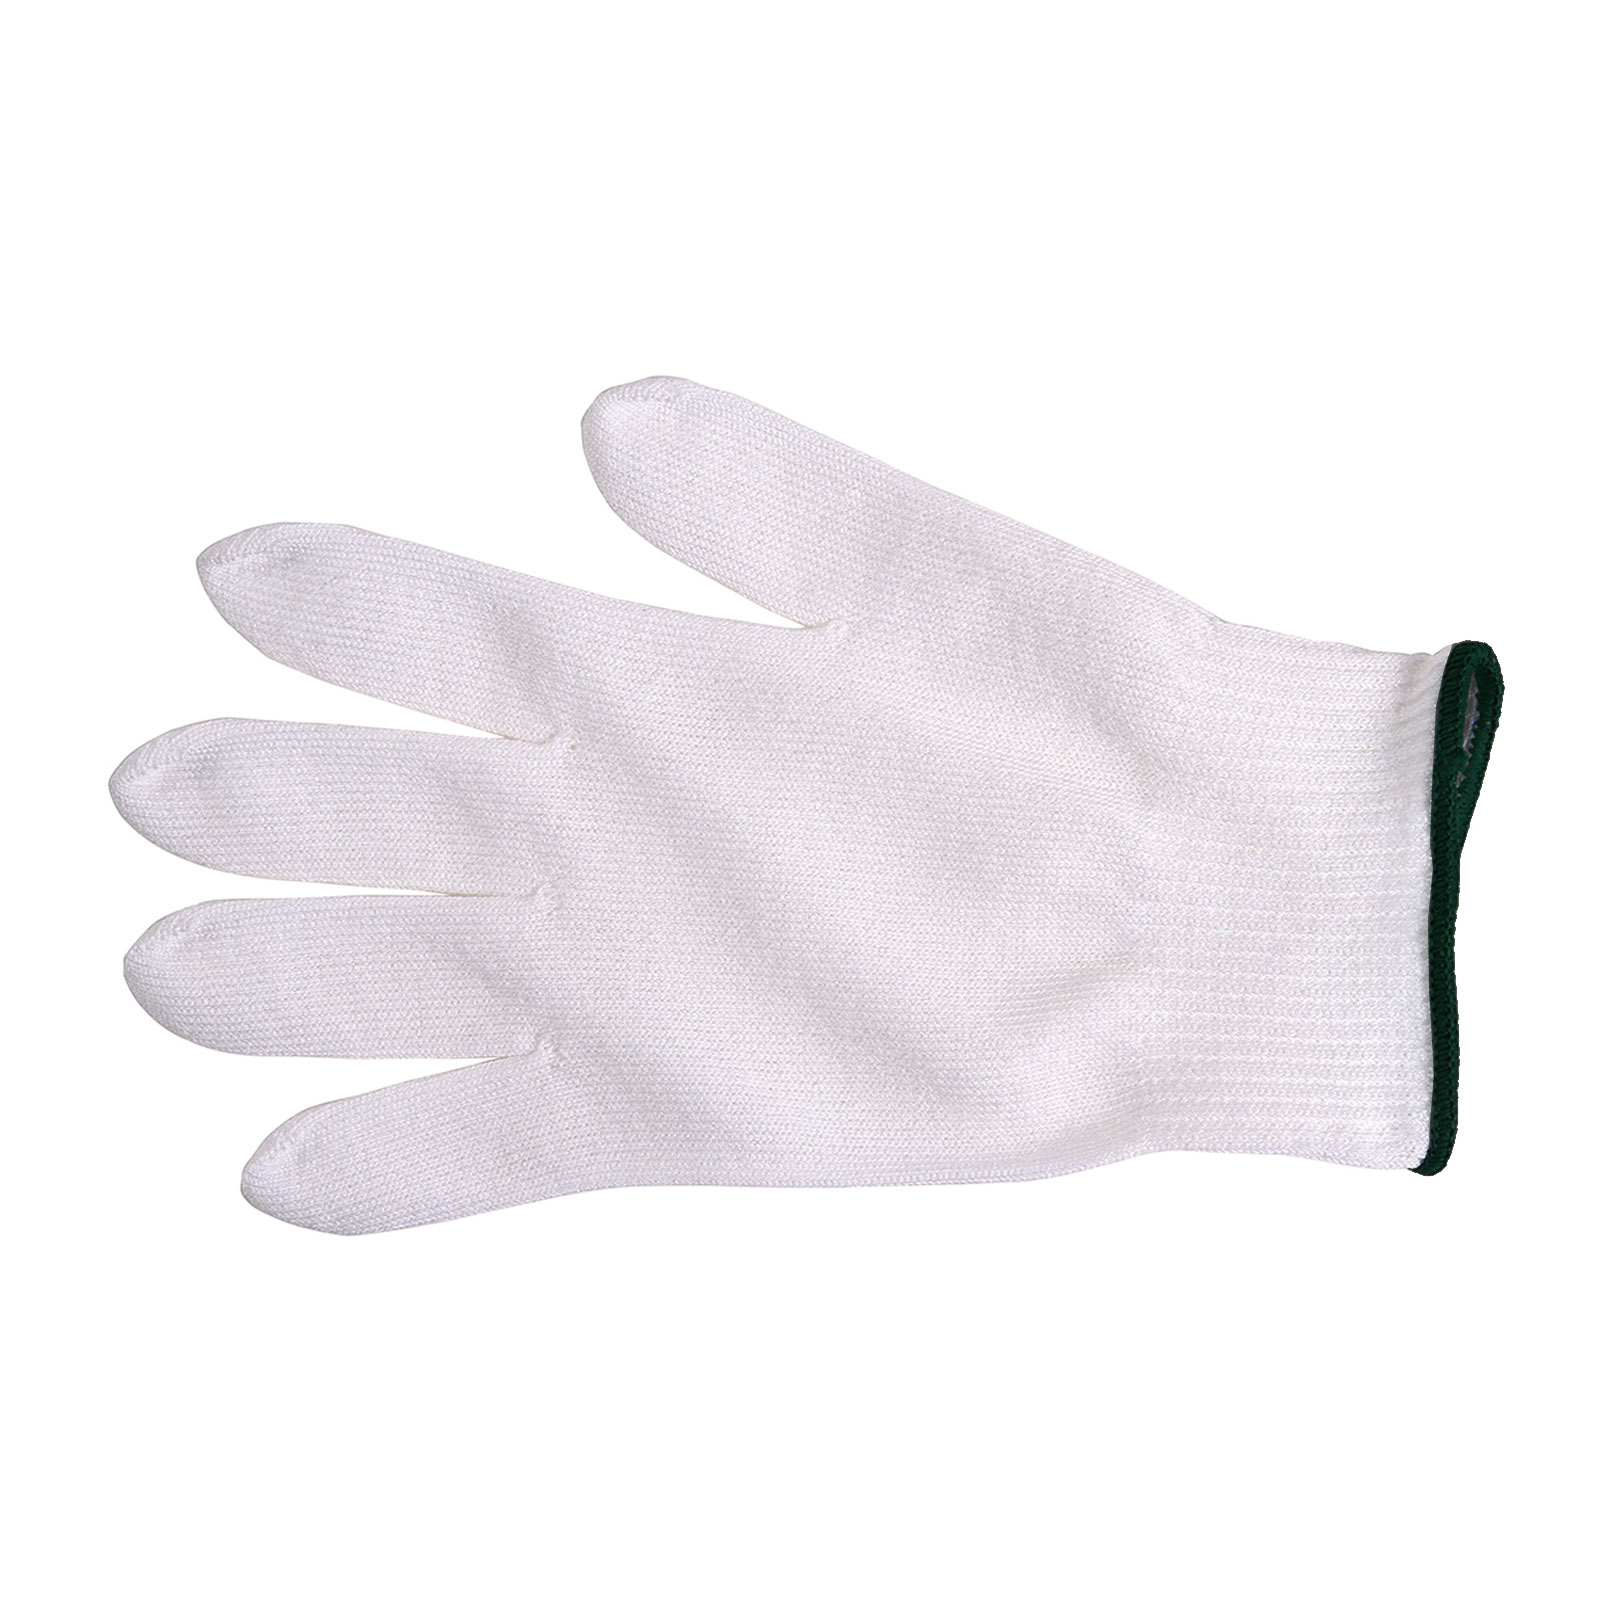 Mercer Culinary M334111X glove, cut resistant